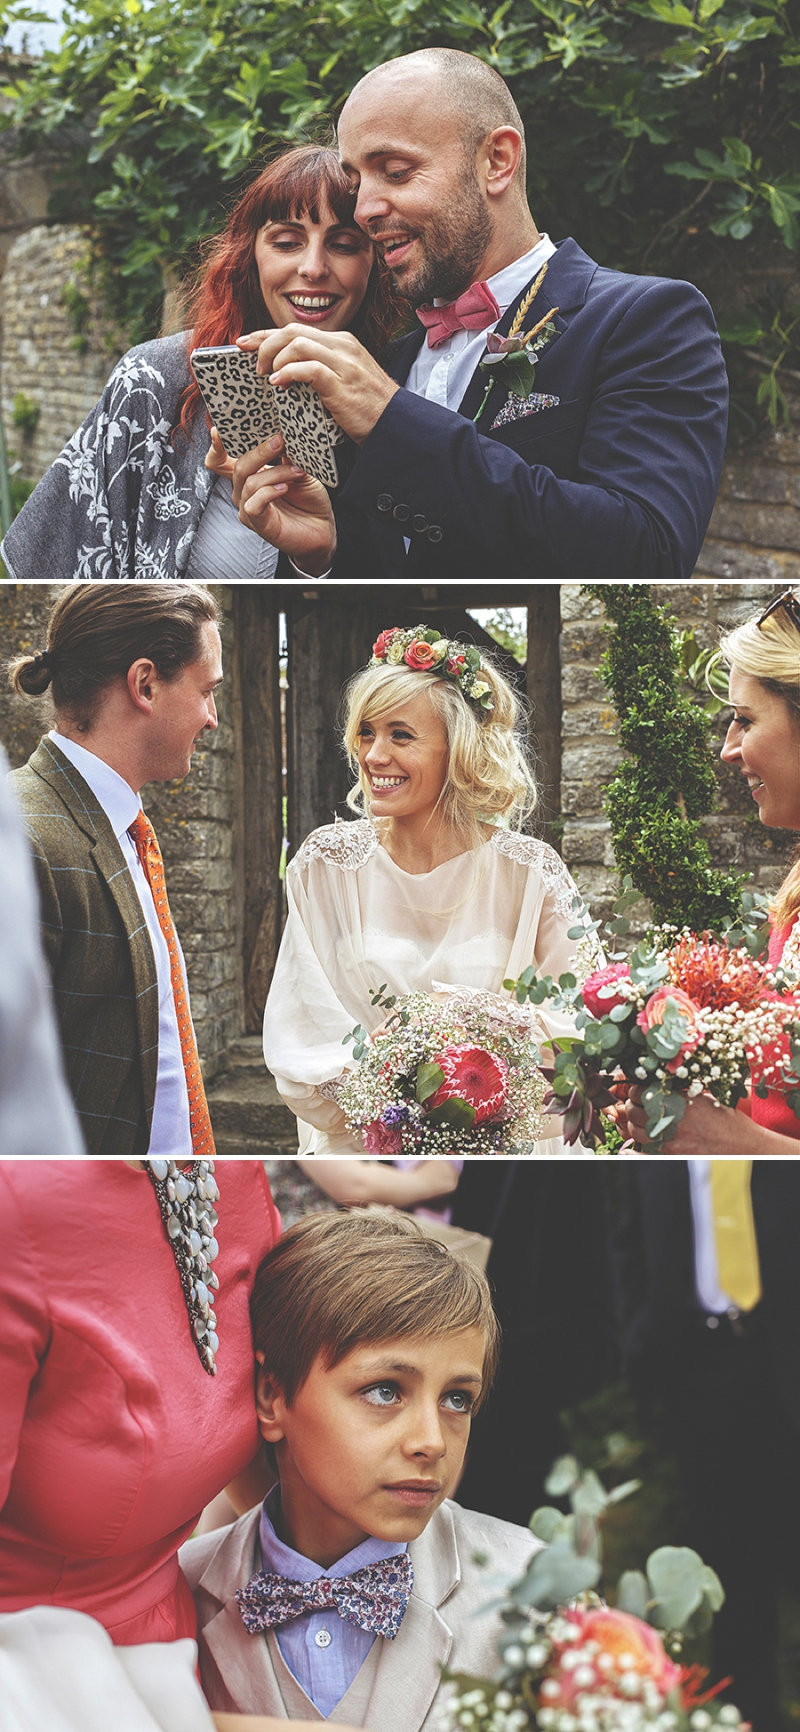 A bespoke designed by the bride wedding dress for a festival Glastonbury themed wedding in Somerset with a floral crown and vintage styling and coral bridesmaids_0478